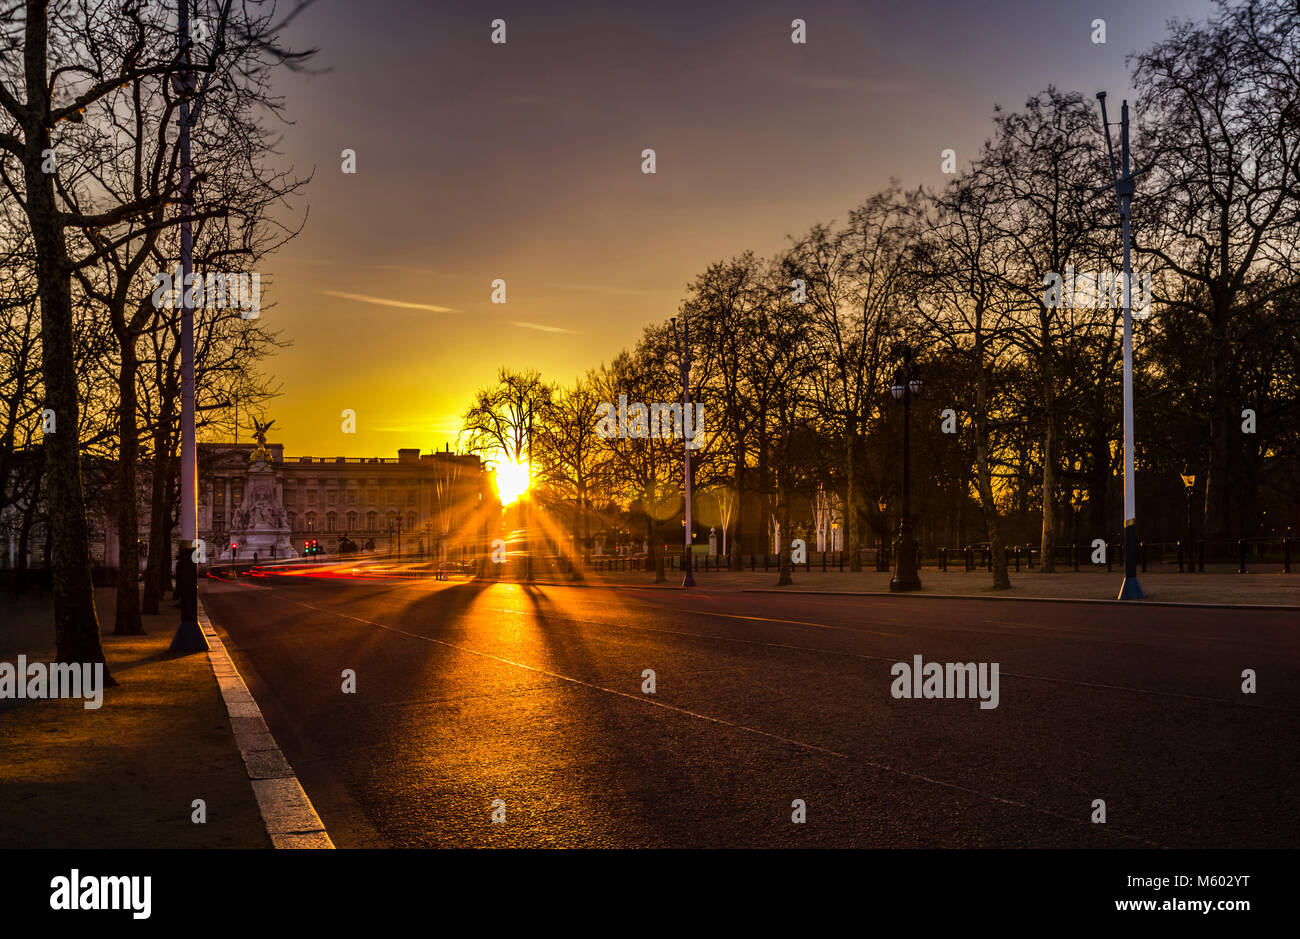 Buckingham Palace at Sunset from The Mall, London, UK - Stock Image